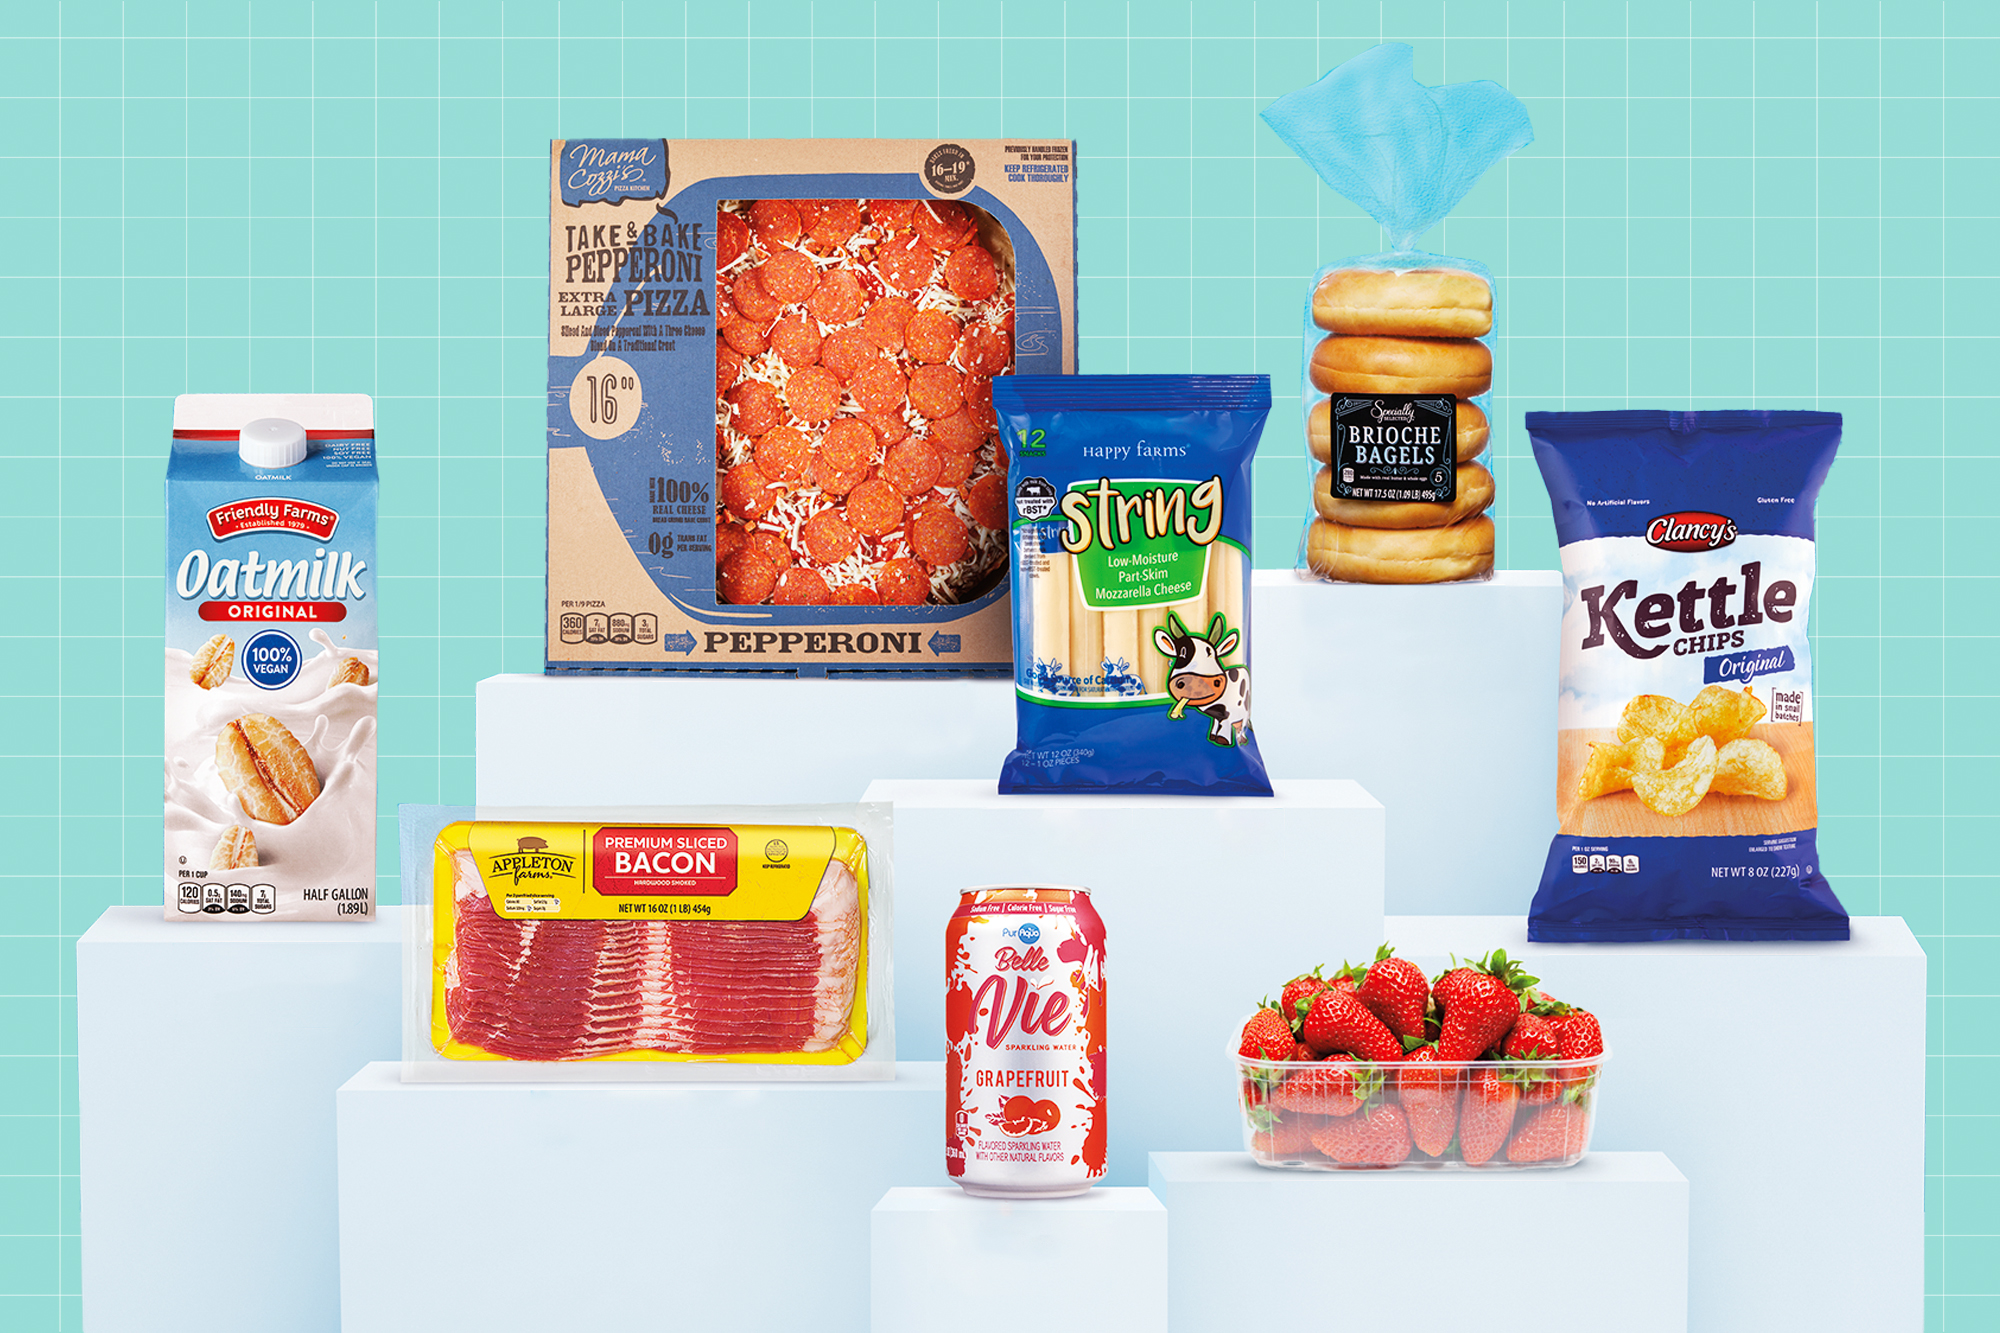 A collection of Aldi food products on pedestals on a designed background